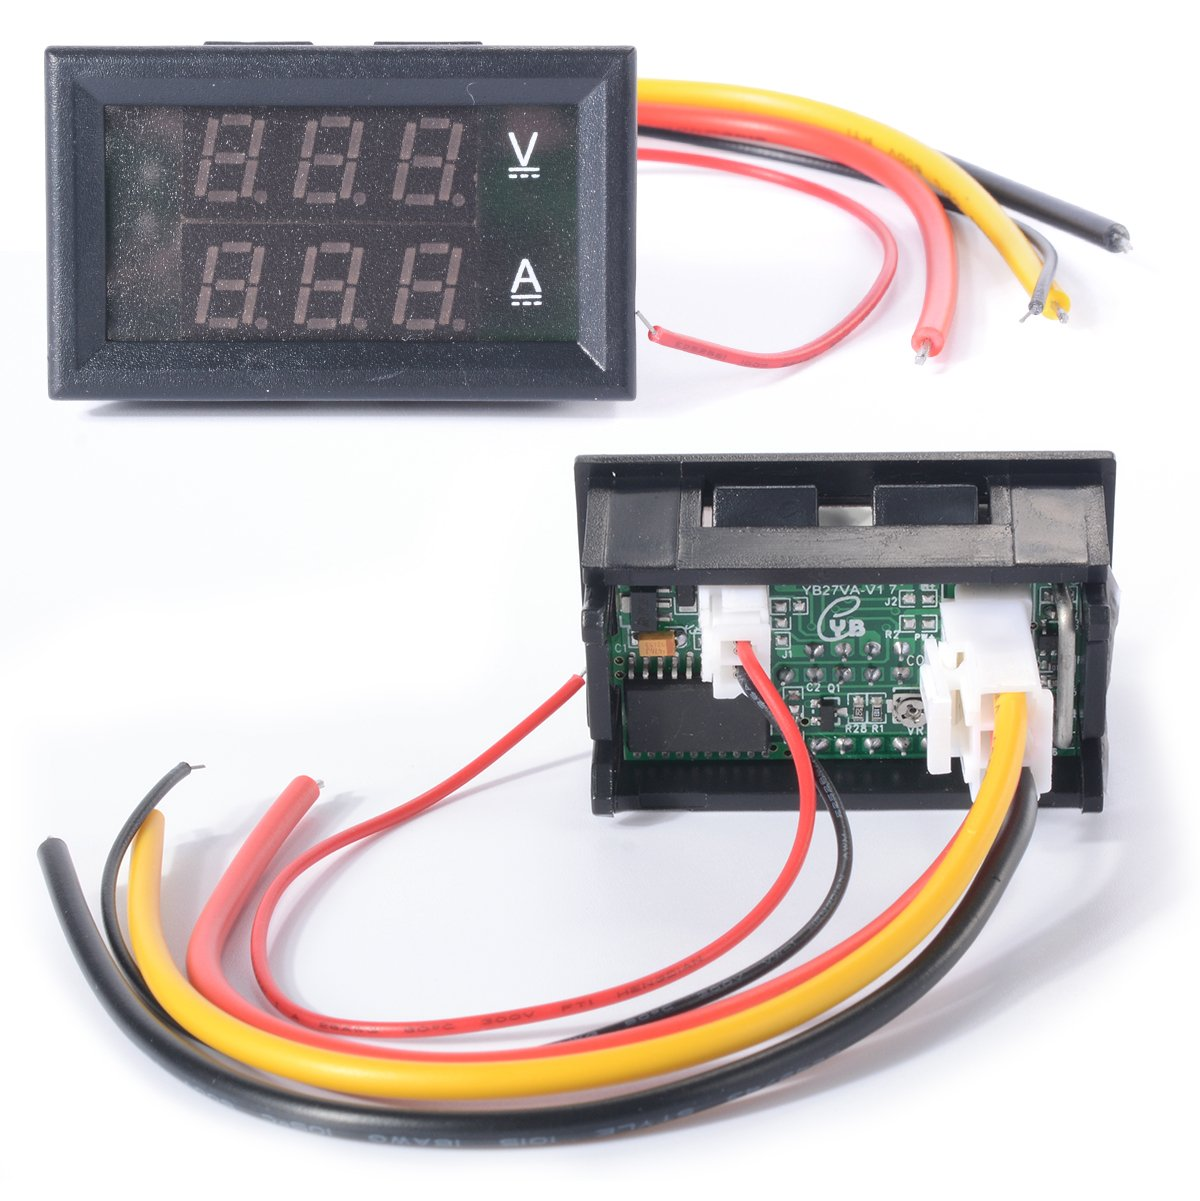 Xcsource Dc 0 100v Voltmeter Ammeter 10a Red Blue Led Wiring Diagram Get Free Image About Electronics